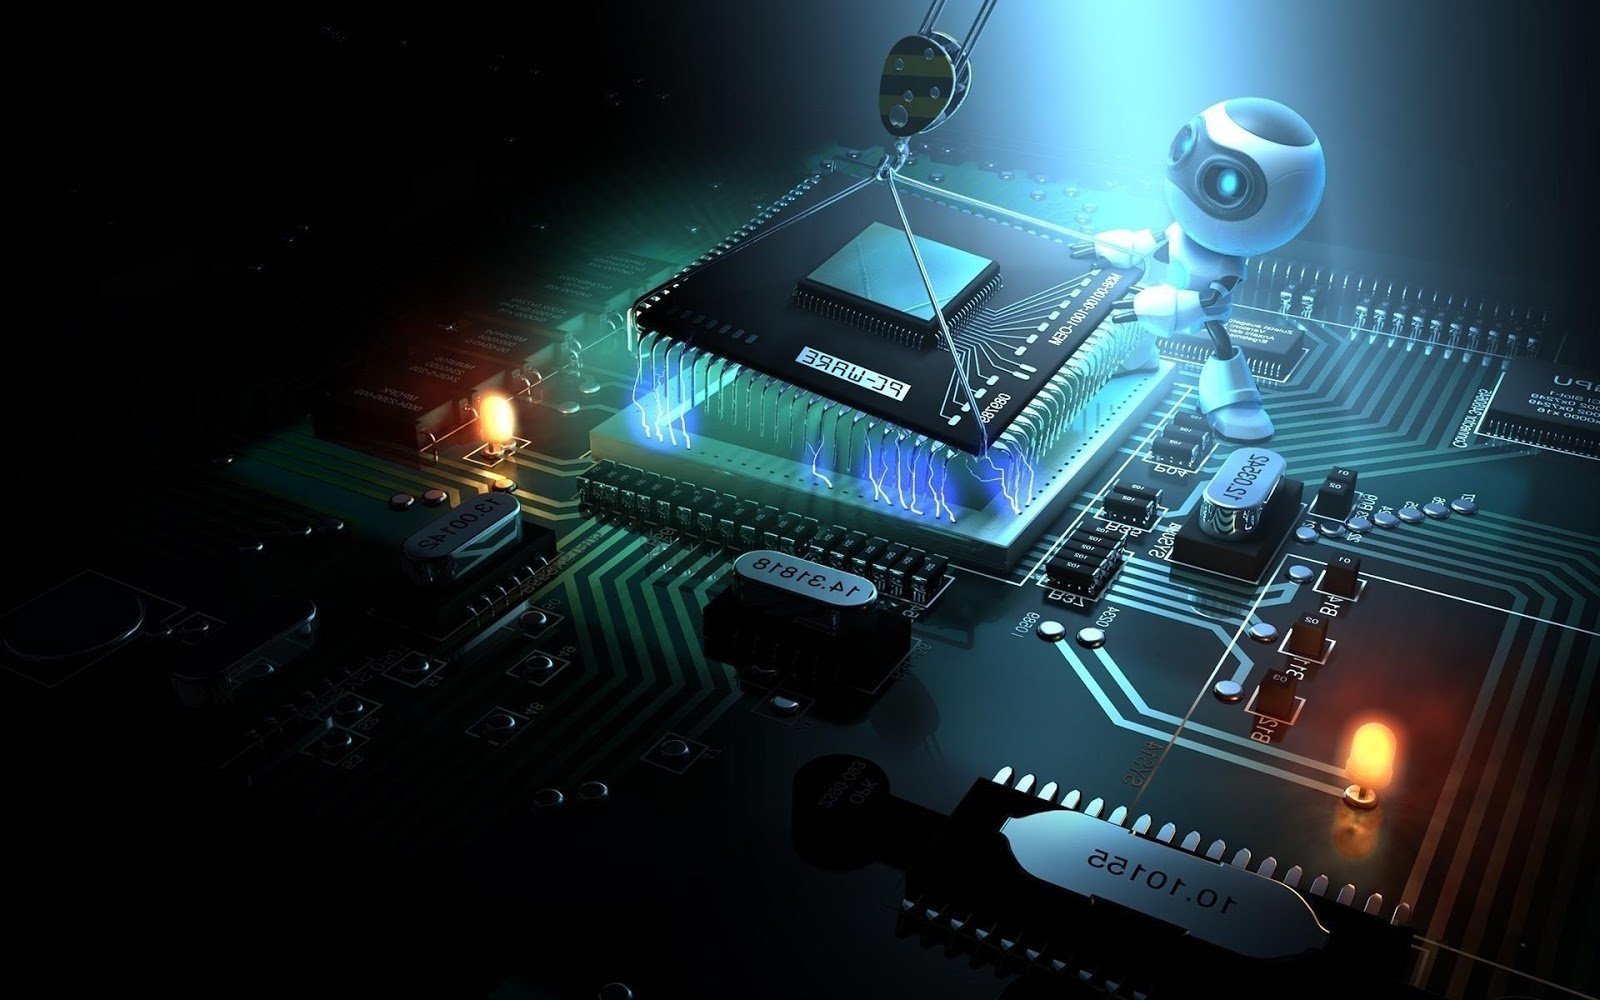 built by 3d robot windows 8 desktop wallpaper 1920x1200 1600x1000